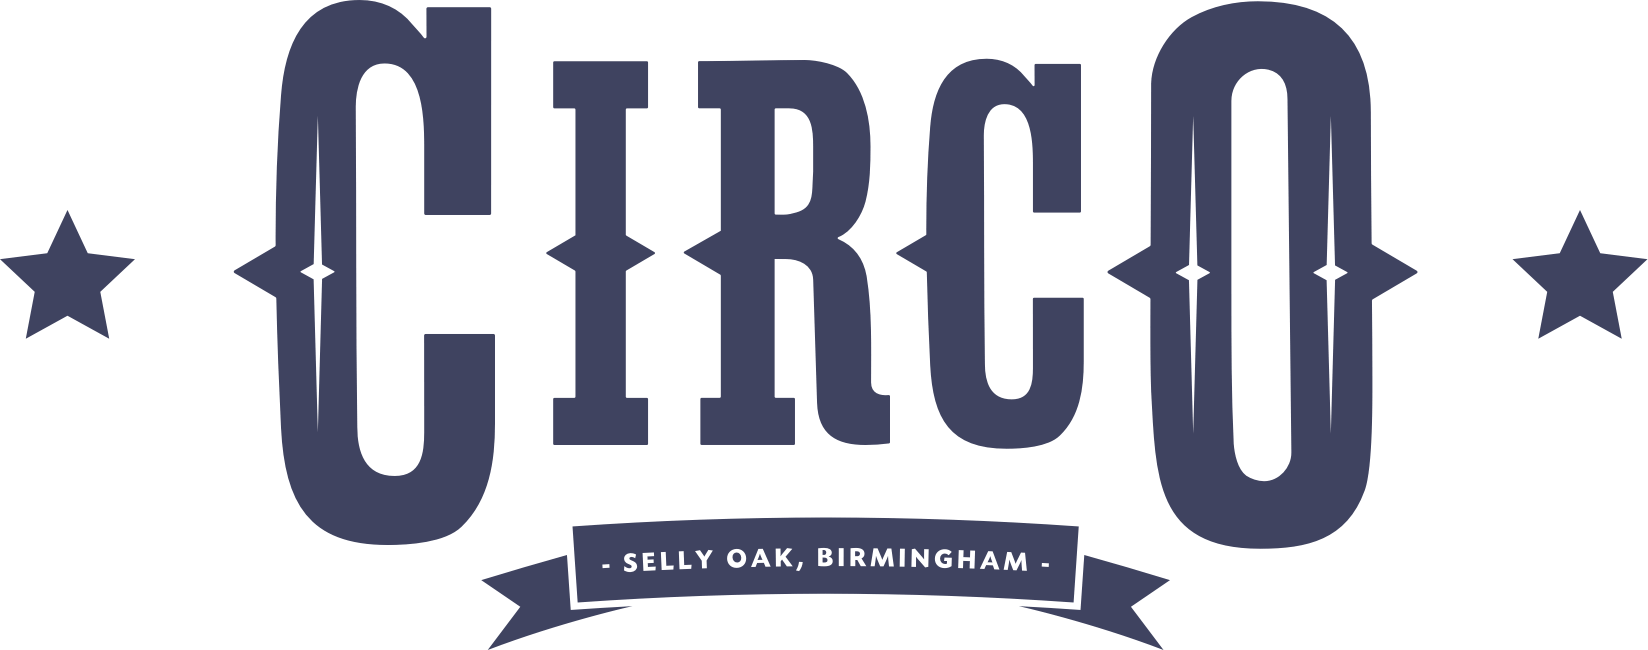 Circo – Selly Oak